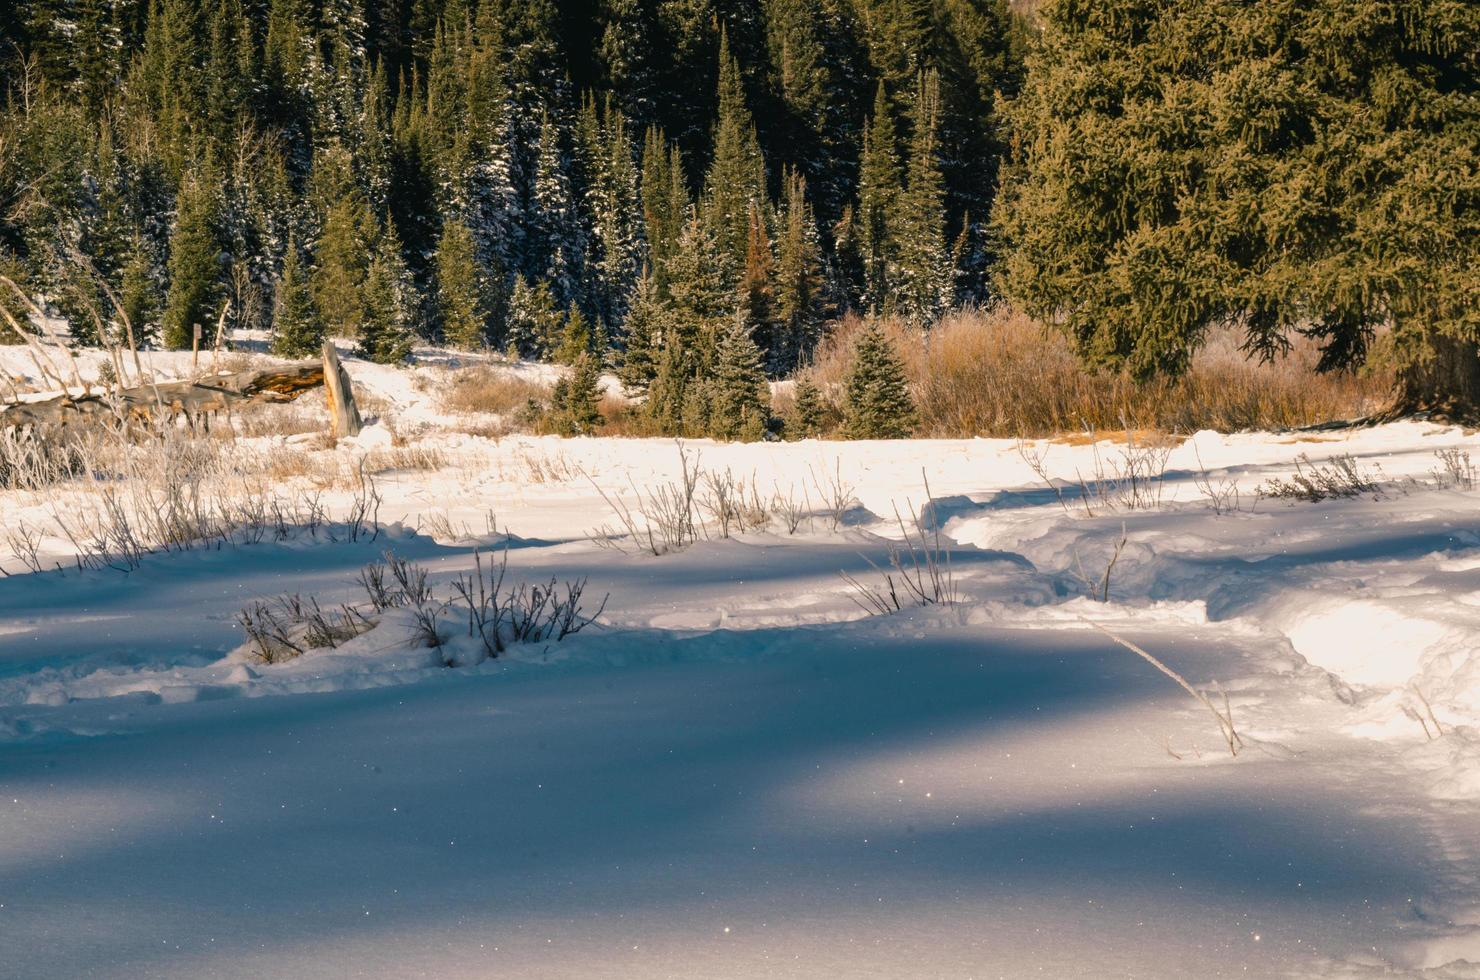 Ground covered with snow near trees photo